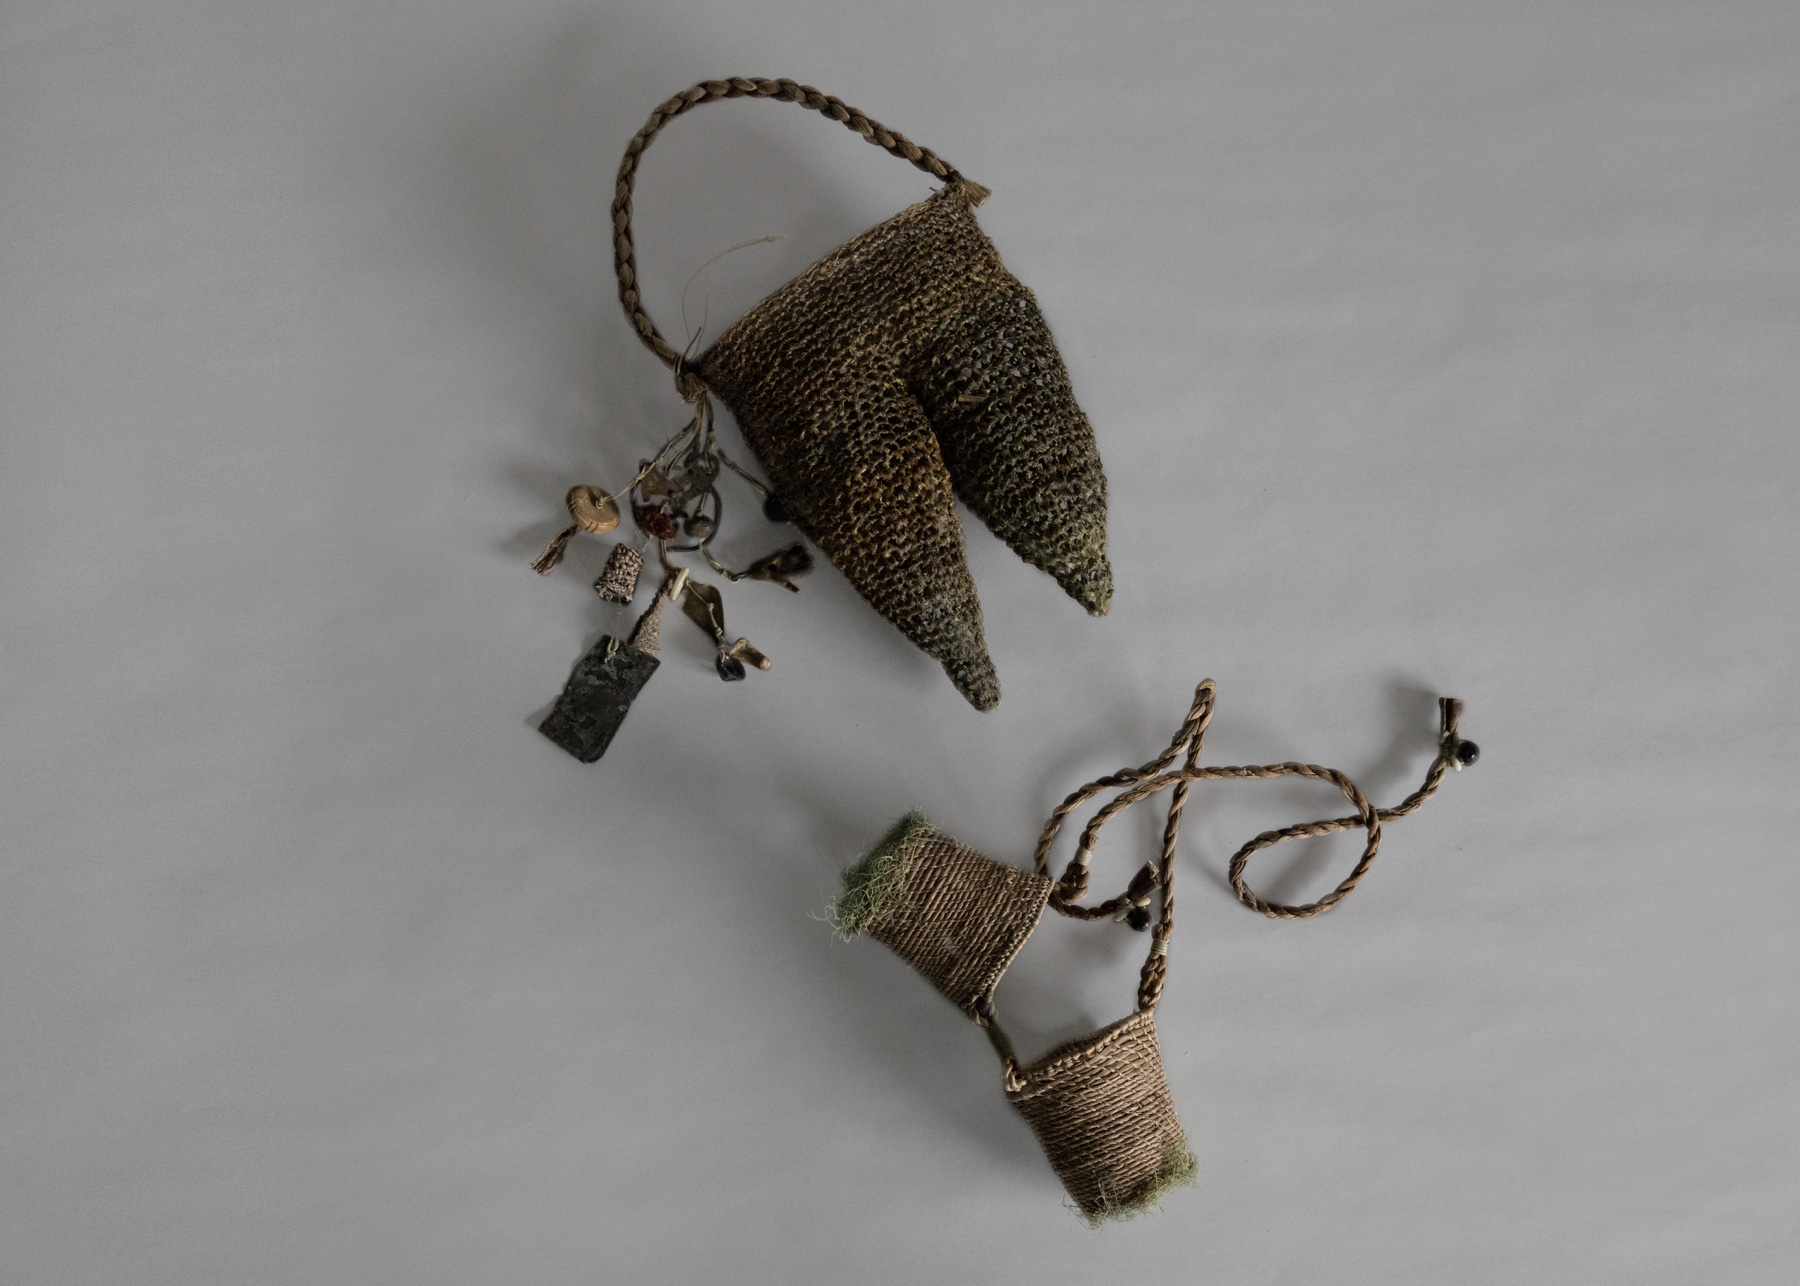 'Safety Goggles with Etui' (for the 'Lofty Thoughts Processor') made by Helle Jorgensen from banana, hemp, lichen, beeswax and found objects B.C. (before cataclysm).